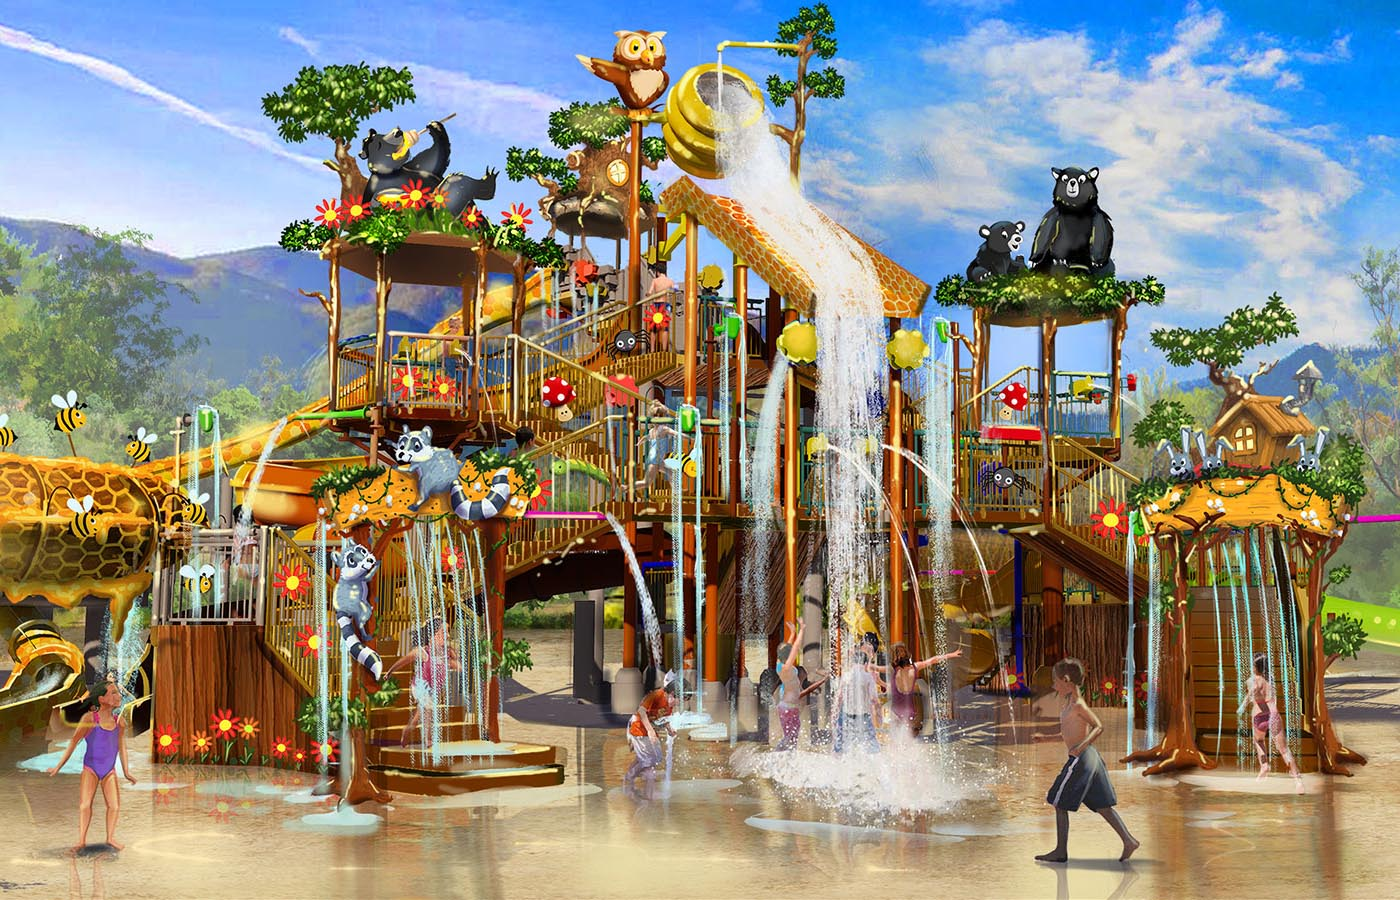 Smoky Mountain's New Waterpark